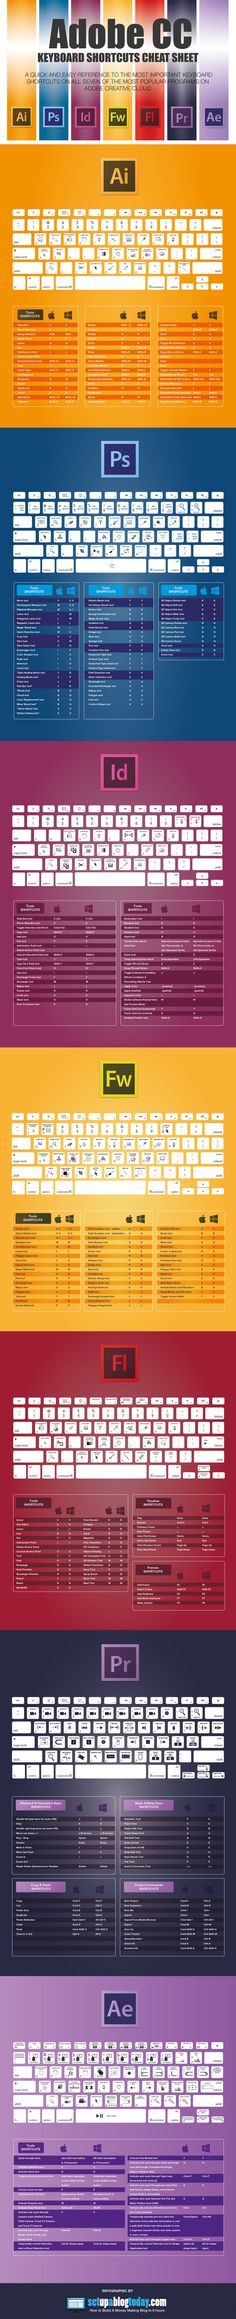 Learn All the Keyboard Shortcuts for Adobe Apps with This Cheat Sheet